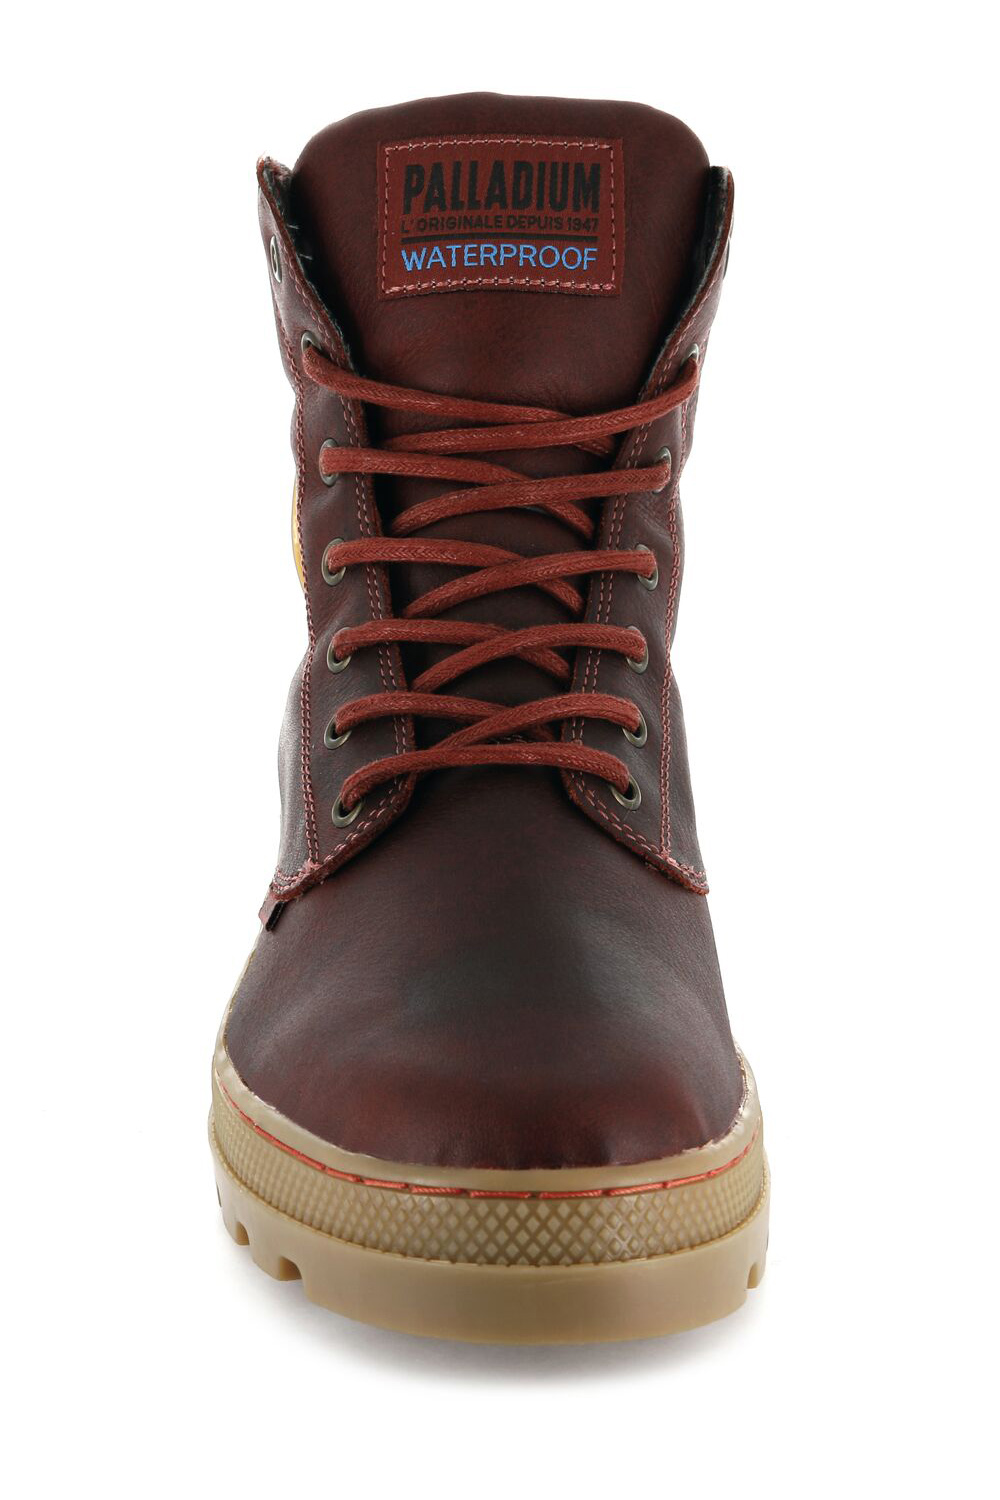 Palladium  Herren Pallabrousse Leder Lace Up Stiefel Padded Walking Padded Stiefel Workwear Schuhes 169312